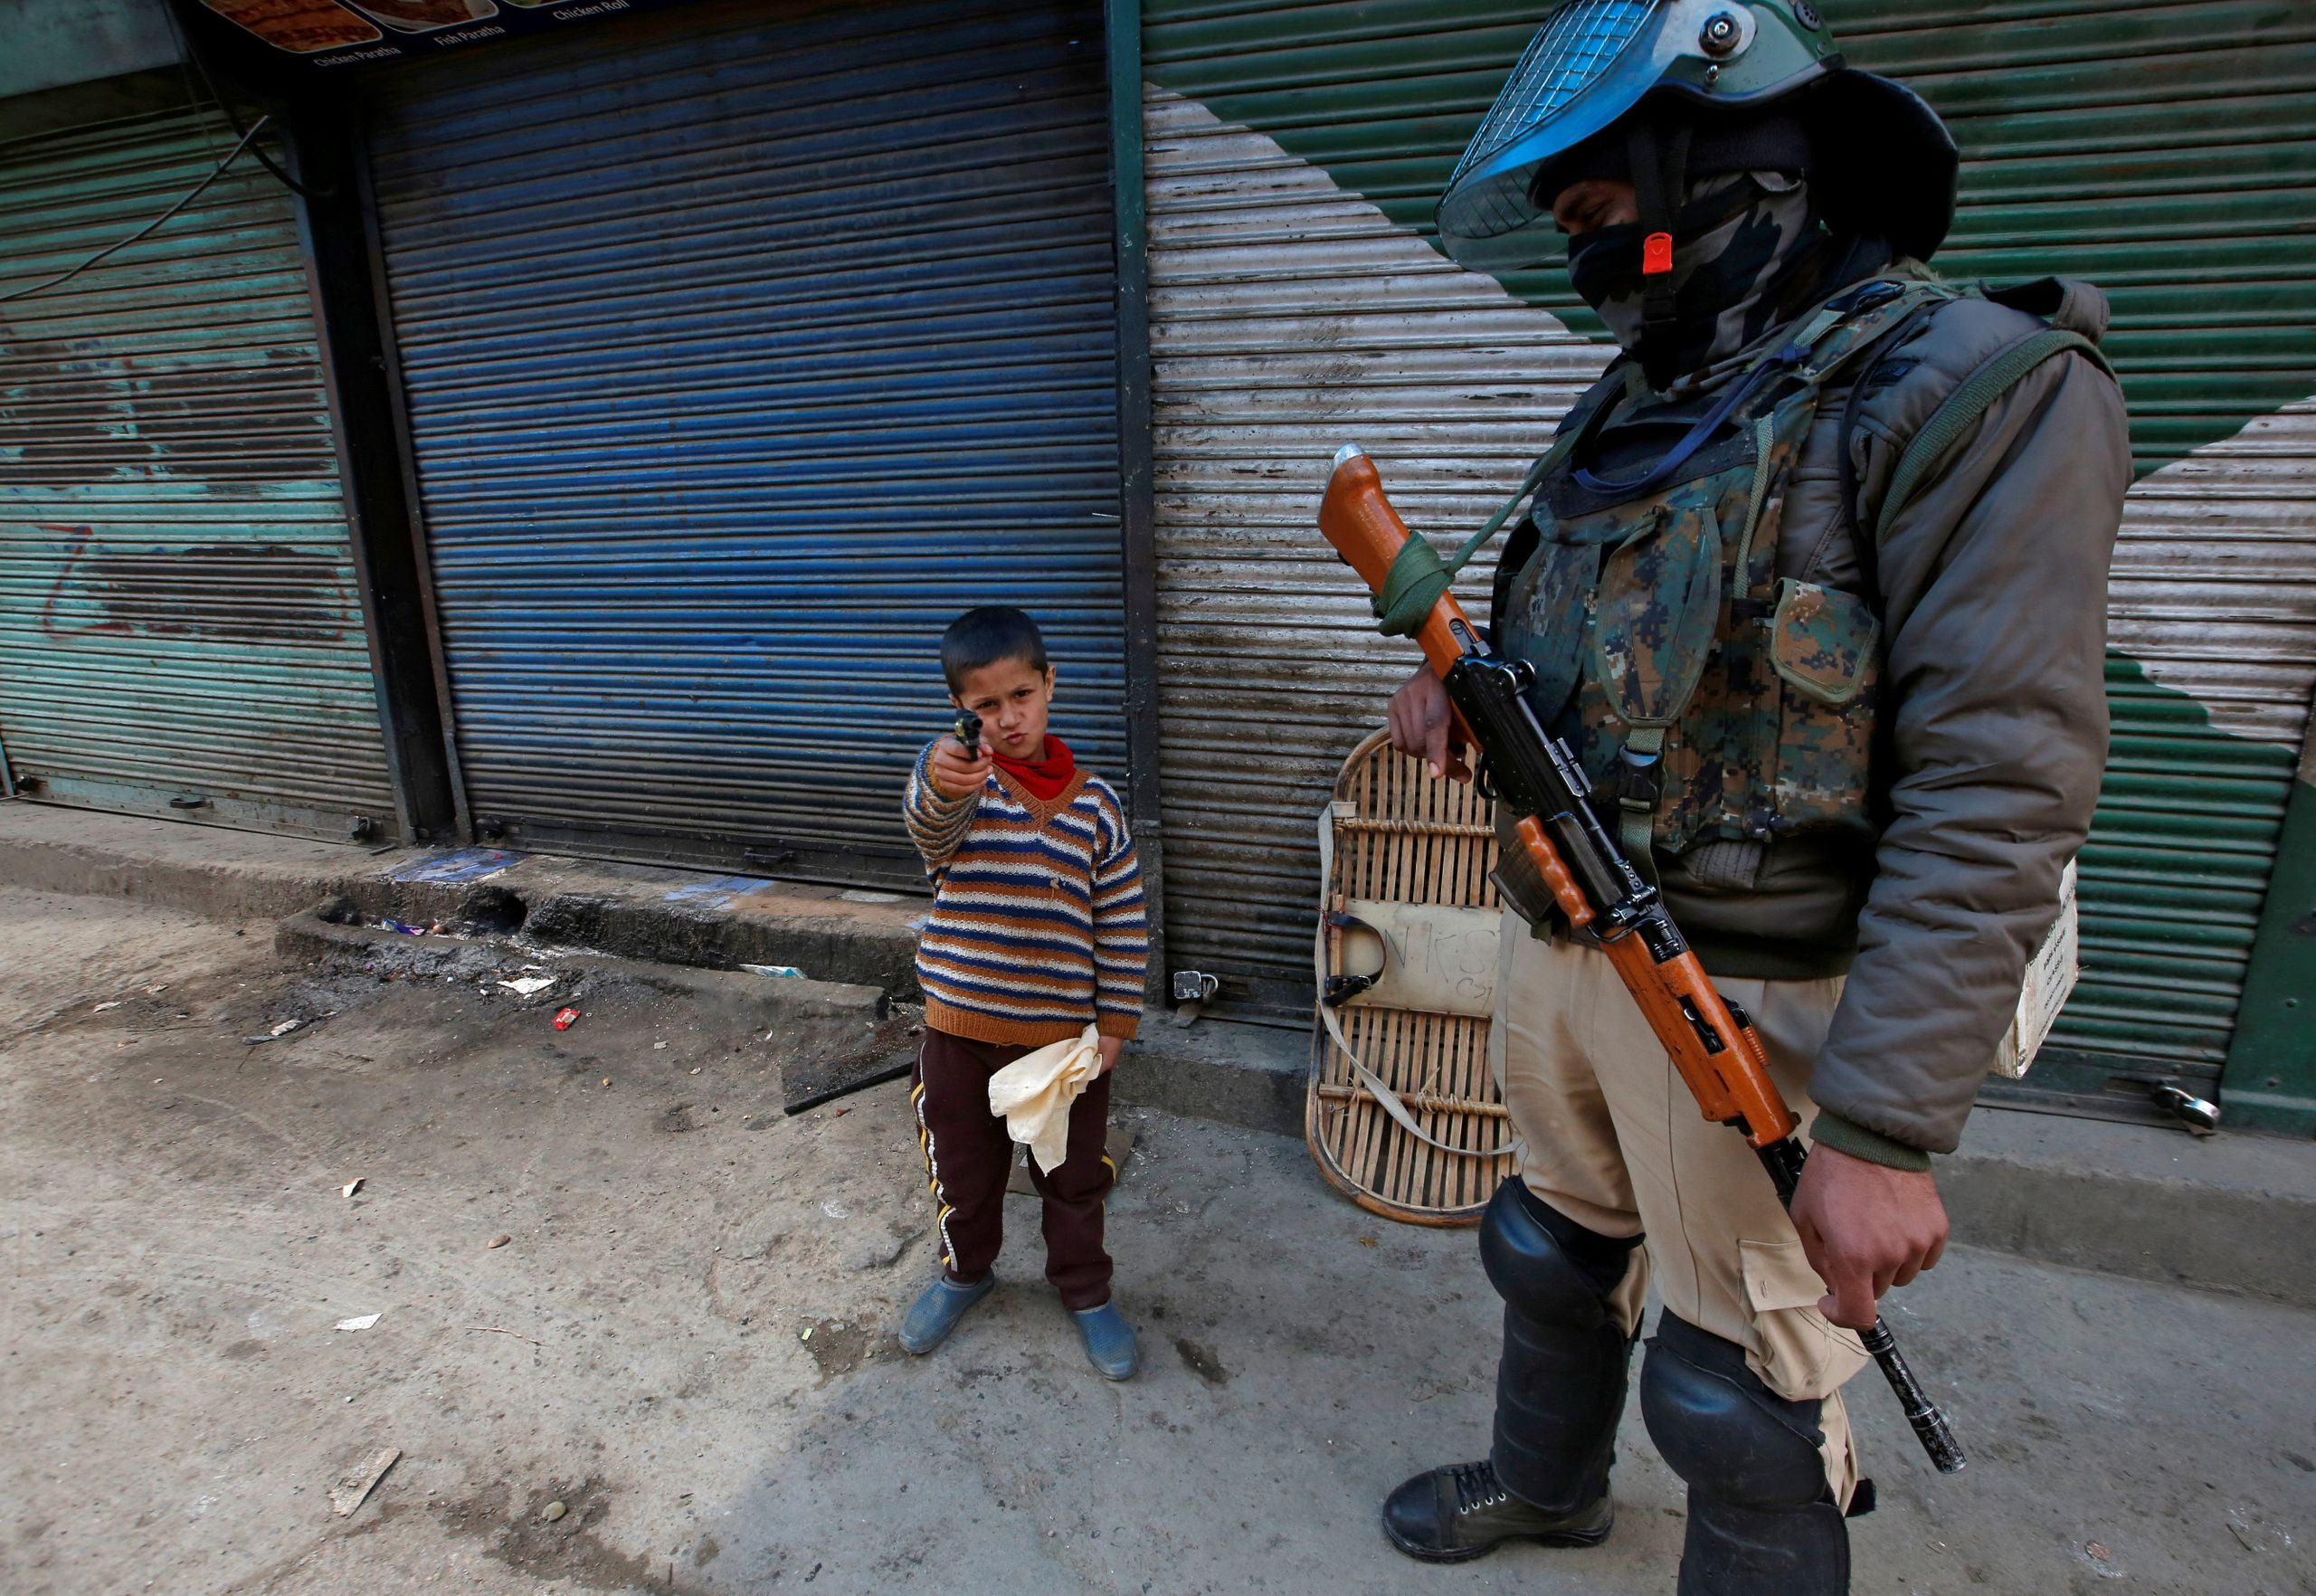 A boy plays with his toy pistol next to an Indian policeman standing guard in front of closed shops during a strike called by